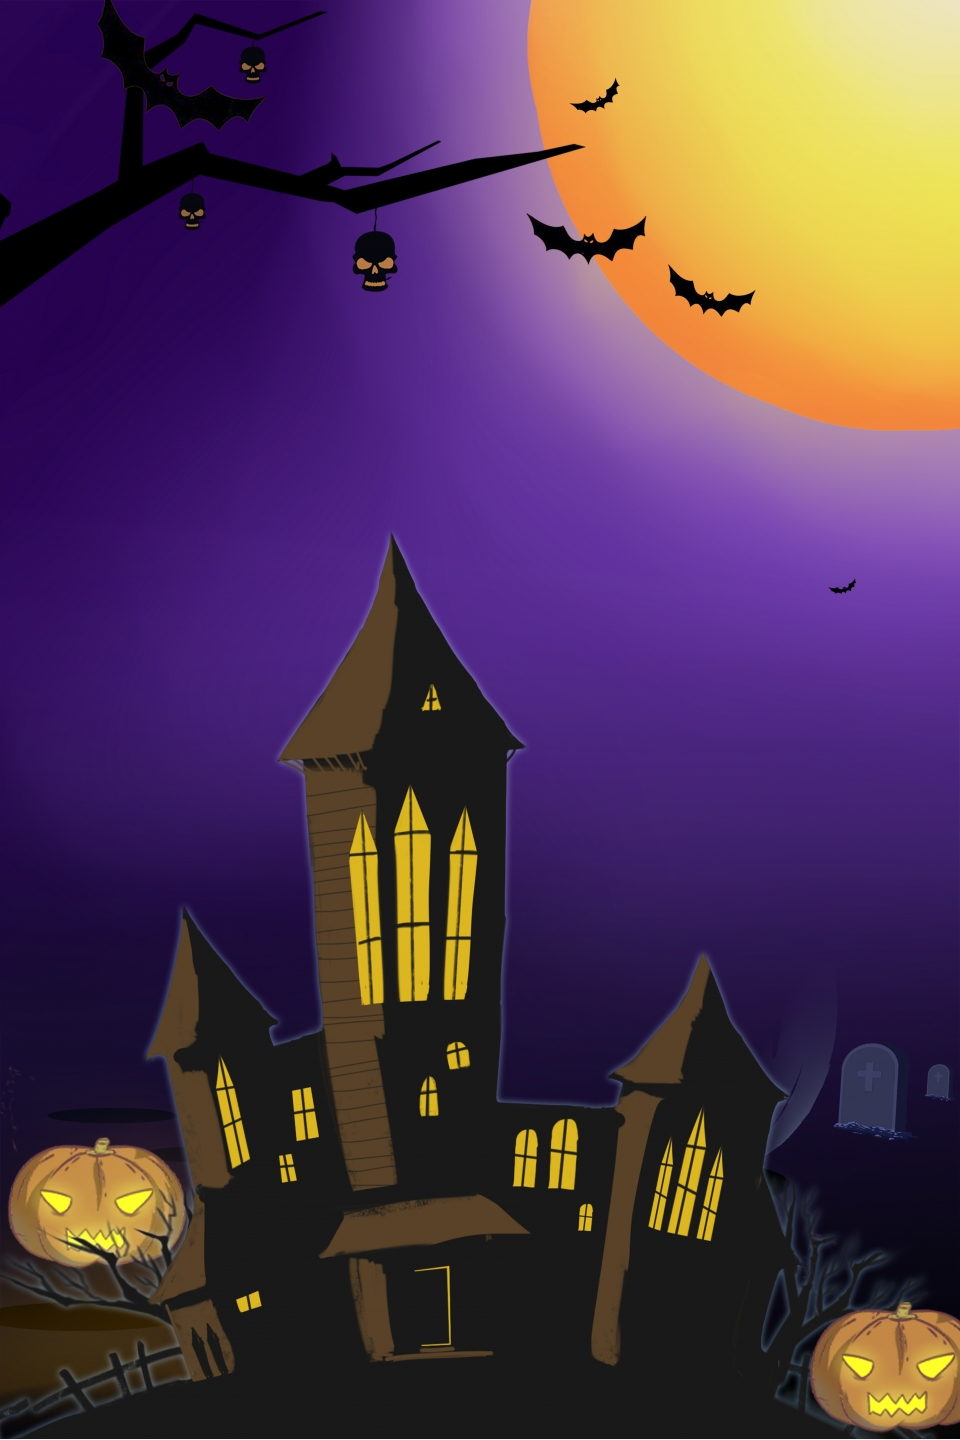 Halloween Poster Background Free.Cartoon Halloween Poster Background Cartoon Poster Hand